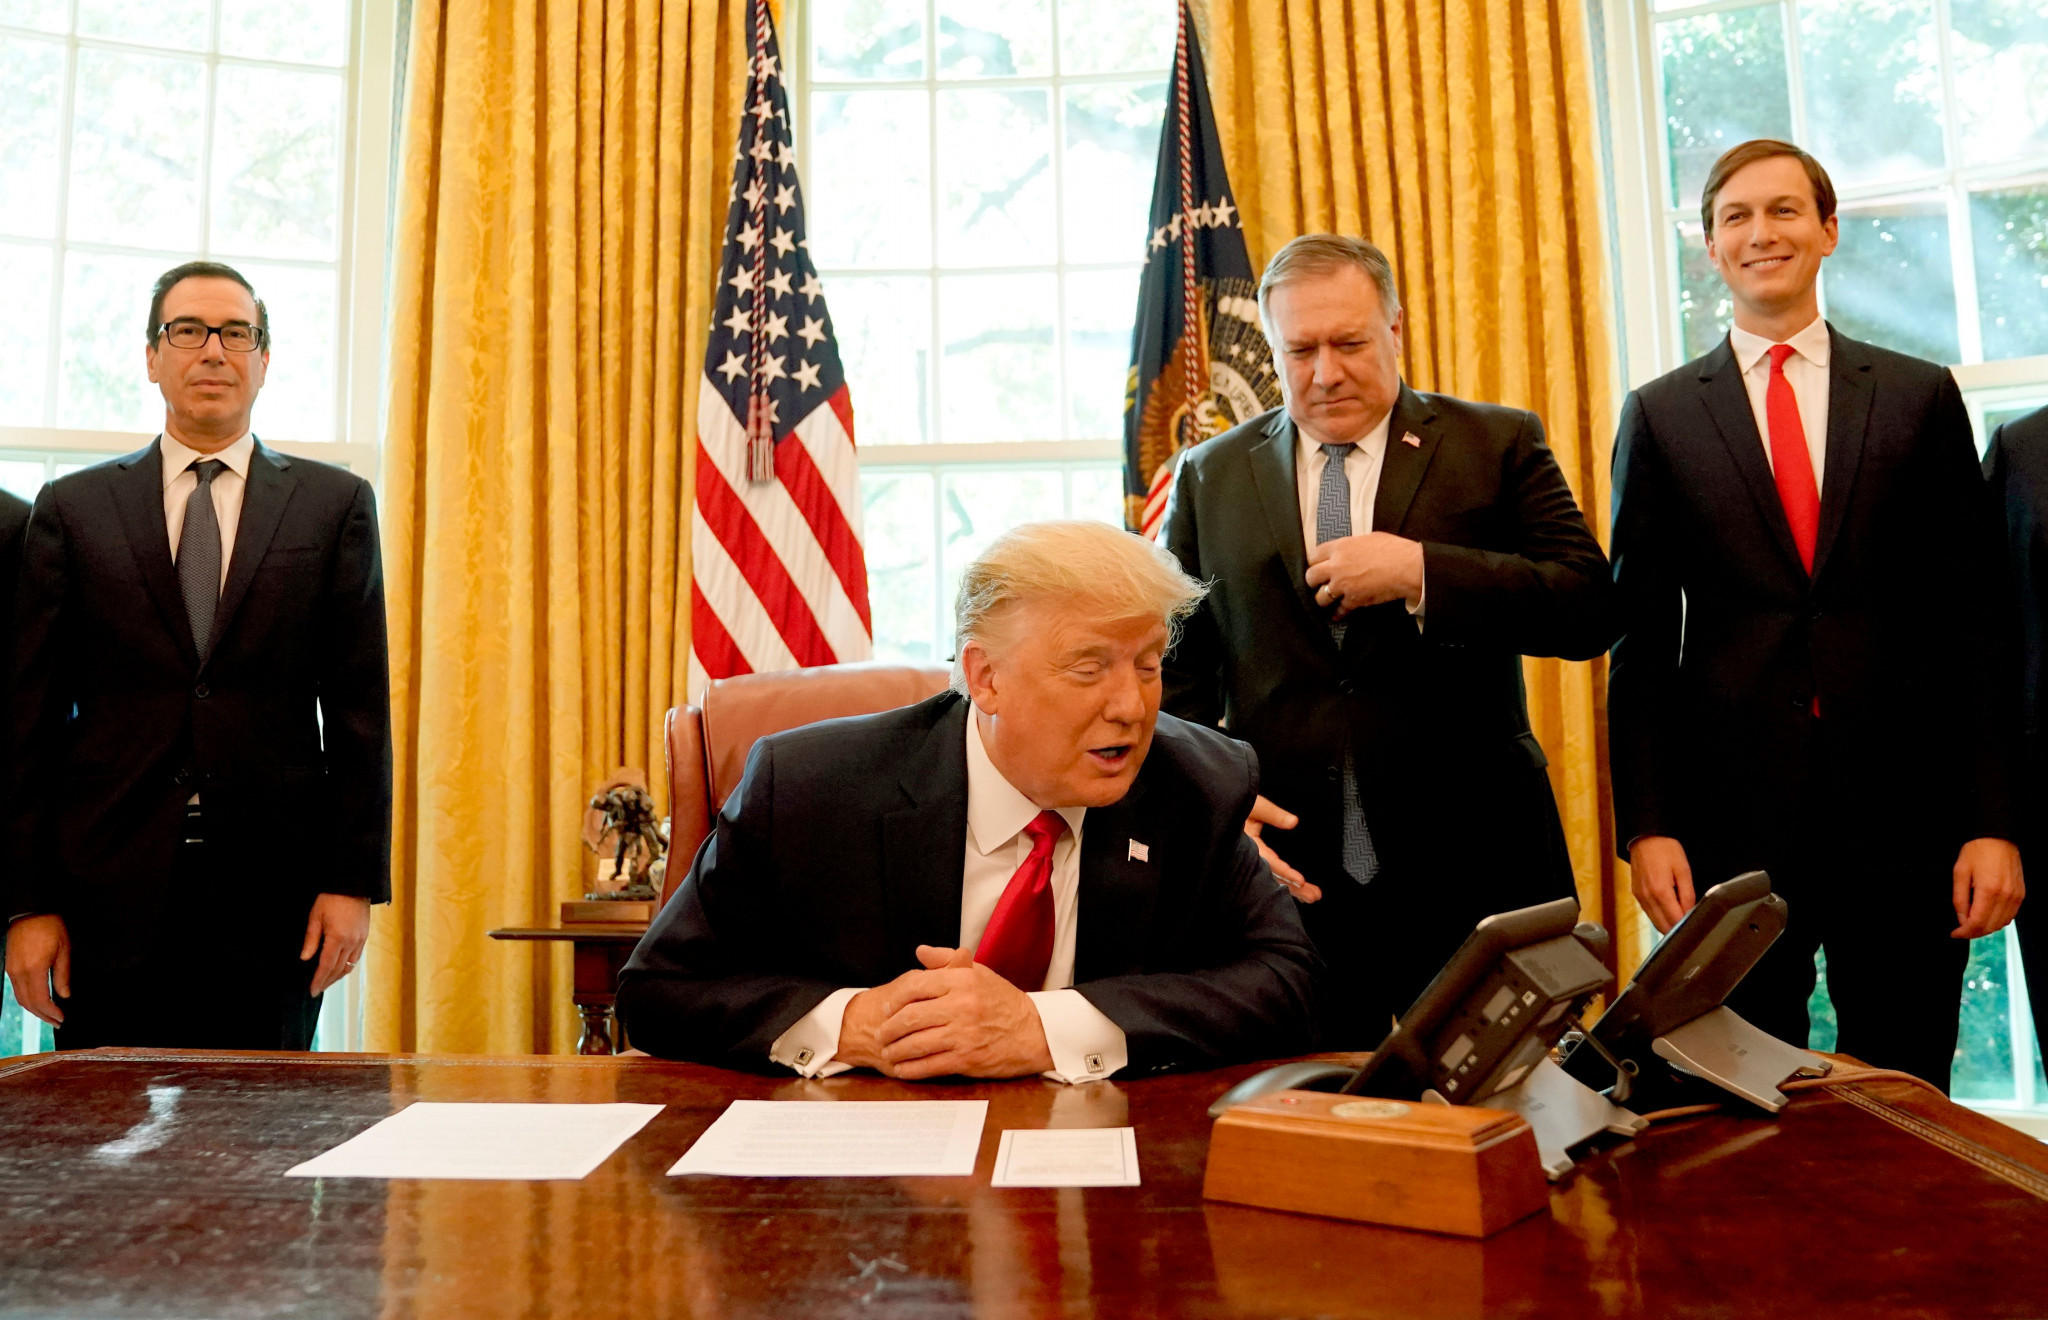 US President Donald Trump has been presented with the bill ©Getty Images